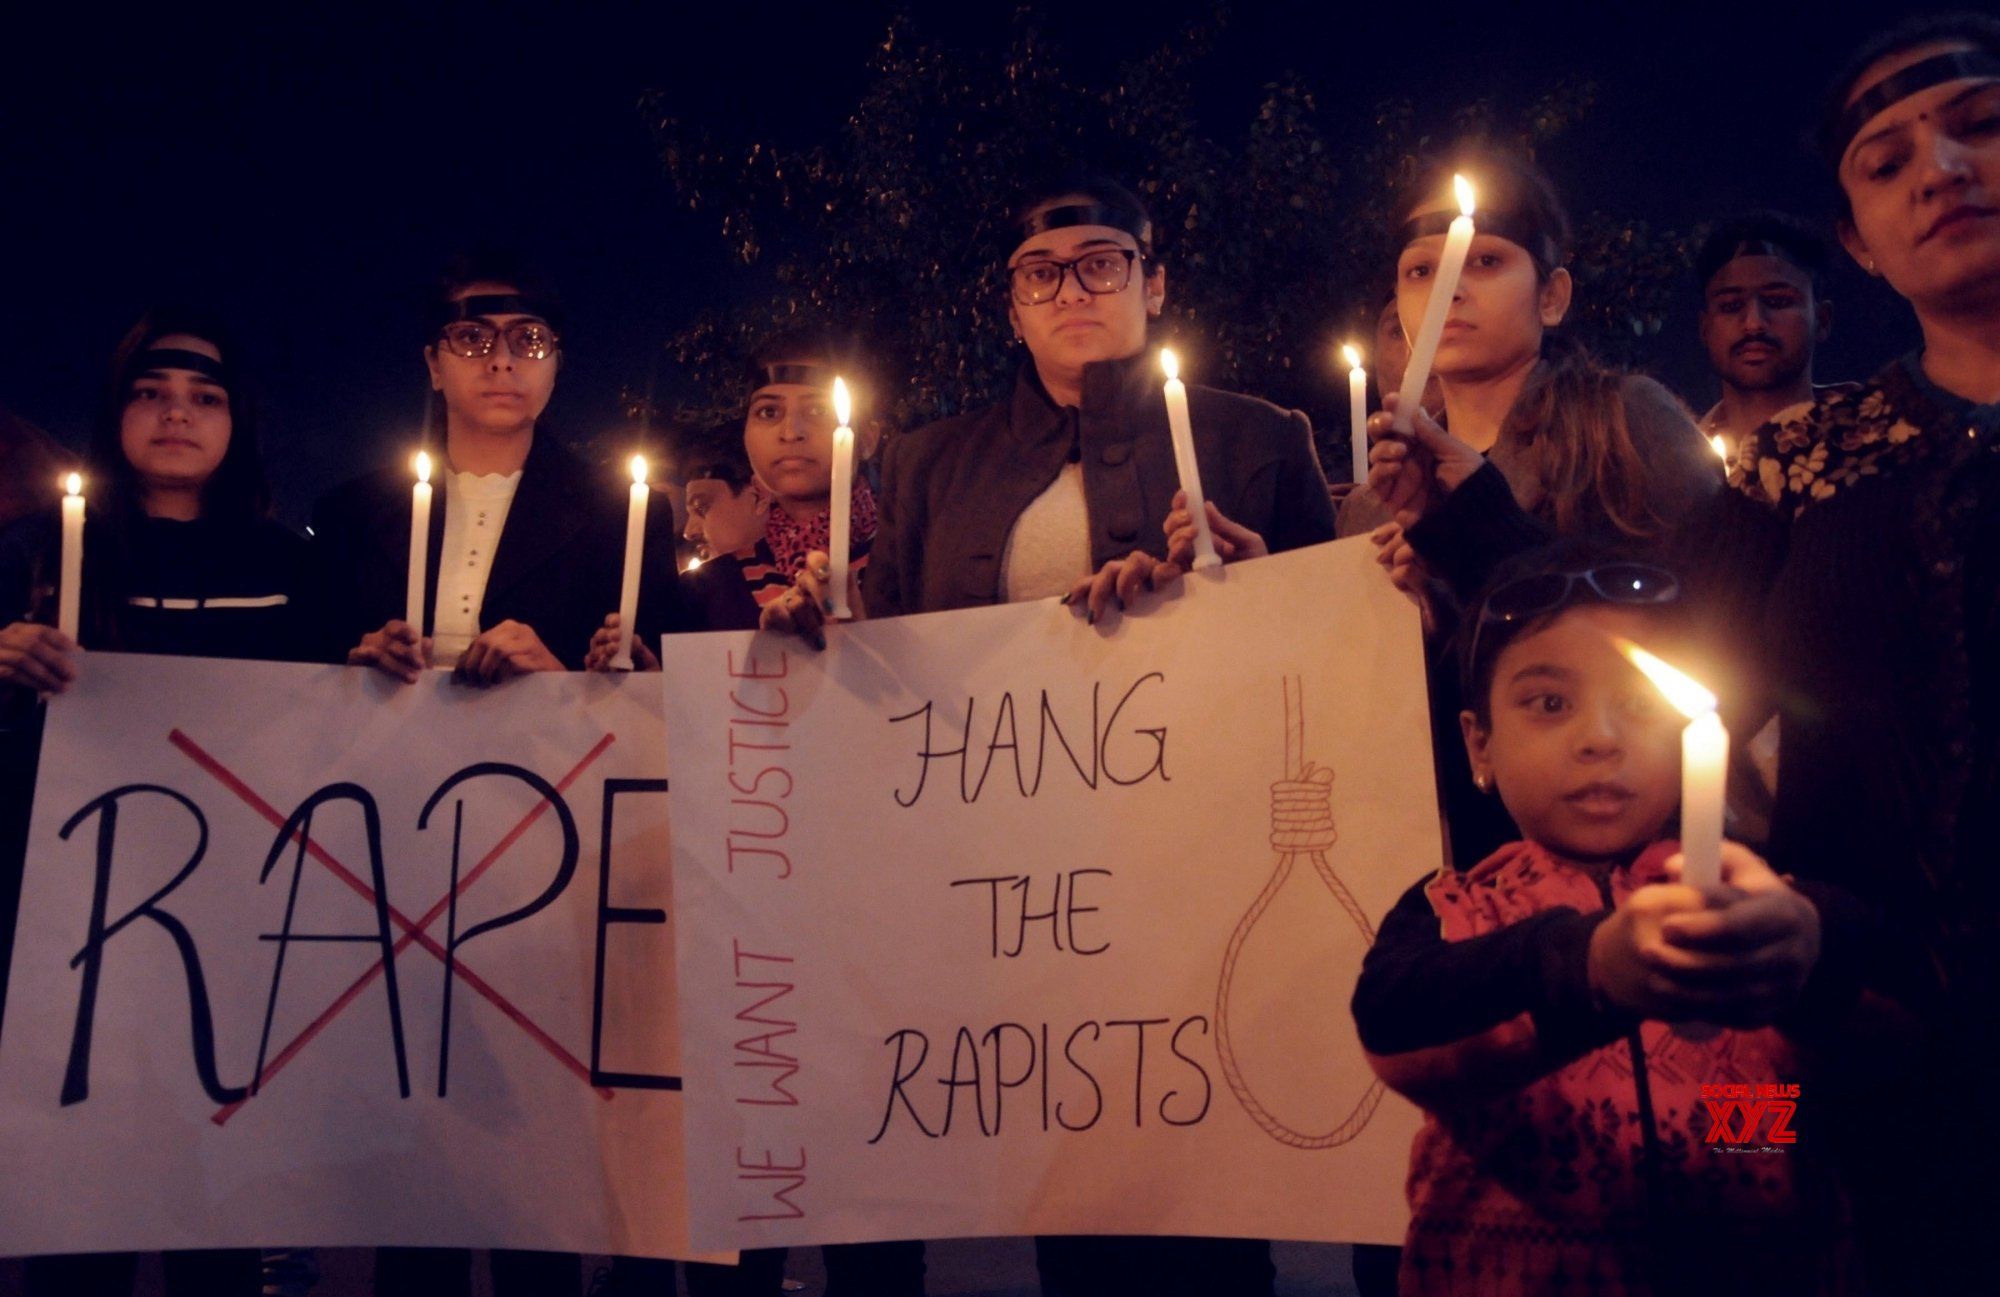 2 more held for objectionable posts on Hyderabad rape case